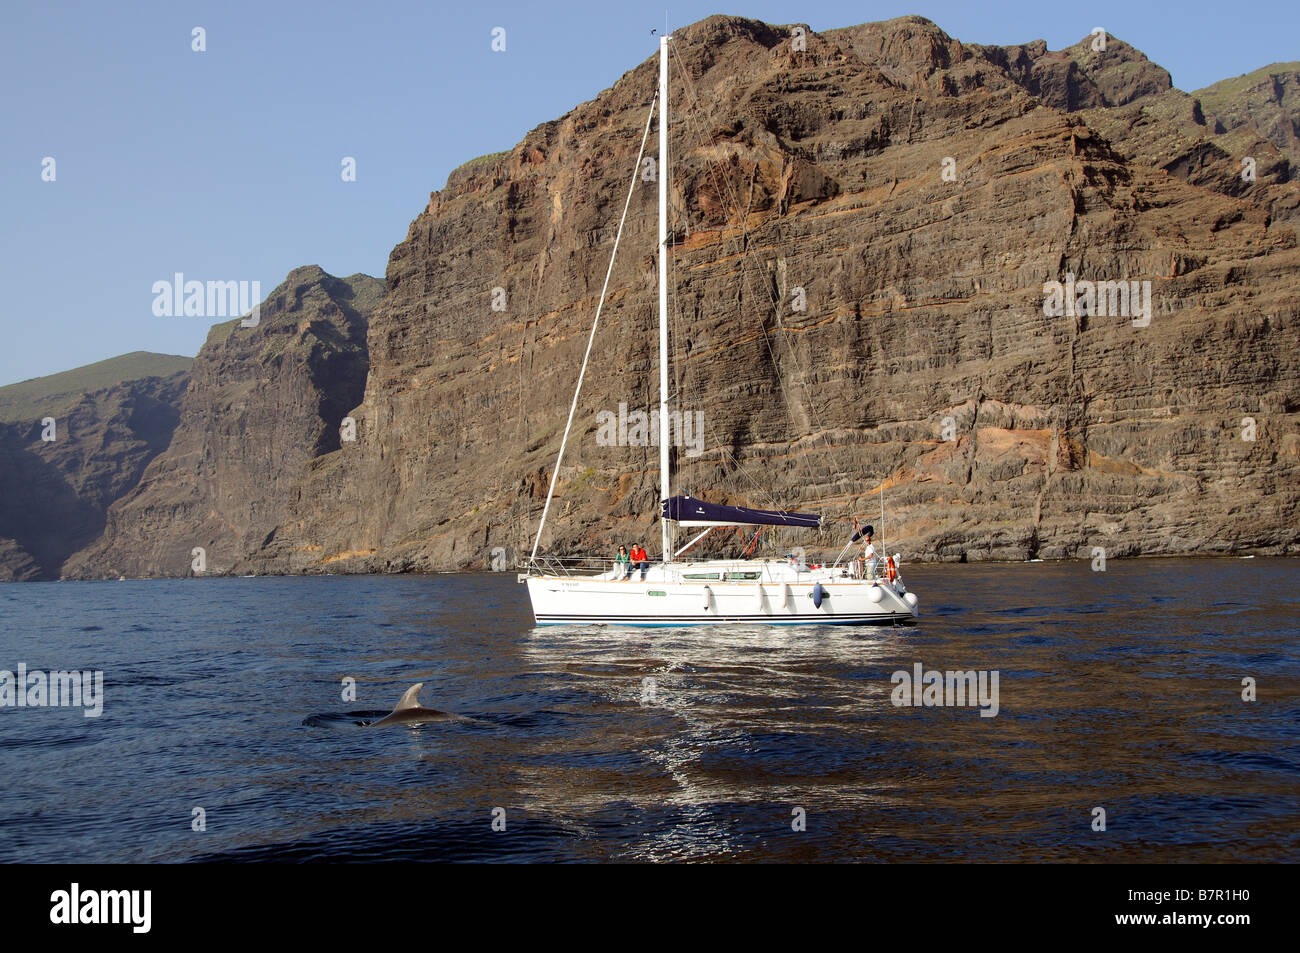 Sailing boat excursion along the Los Gigantes Cliffs coast of southern Tenerife Canary Islands Dolphin watching - Stock Image